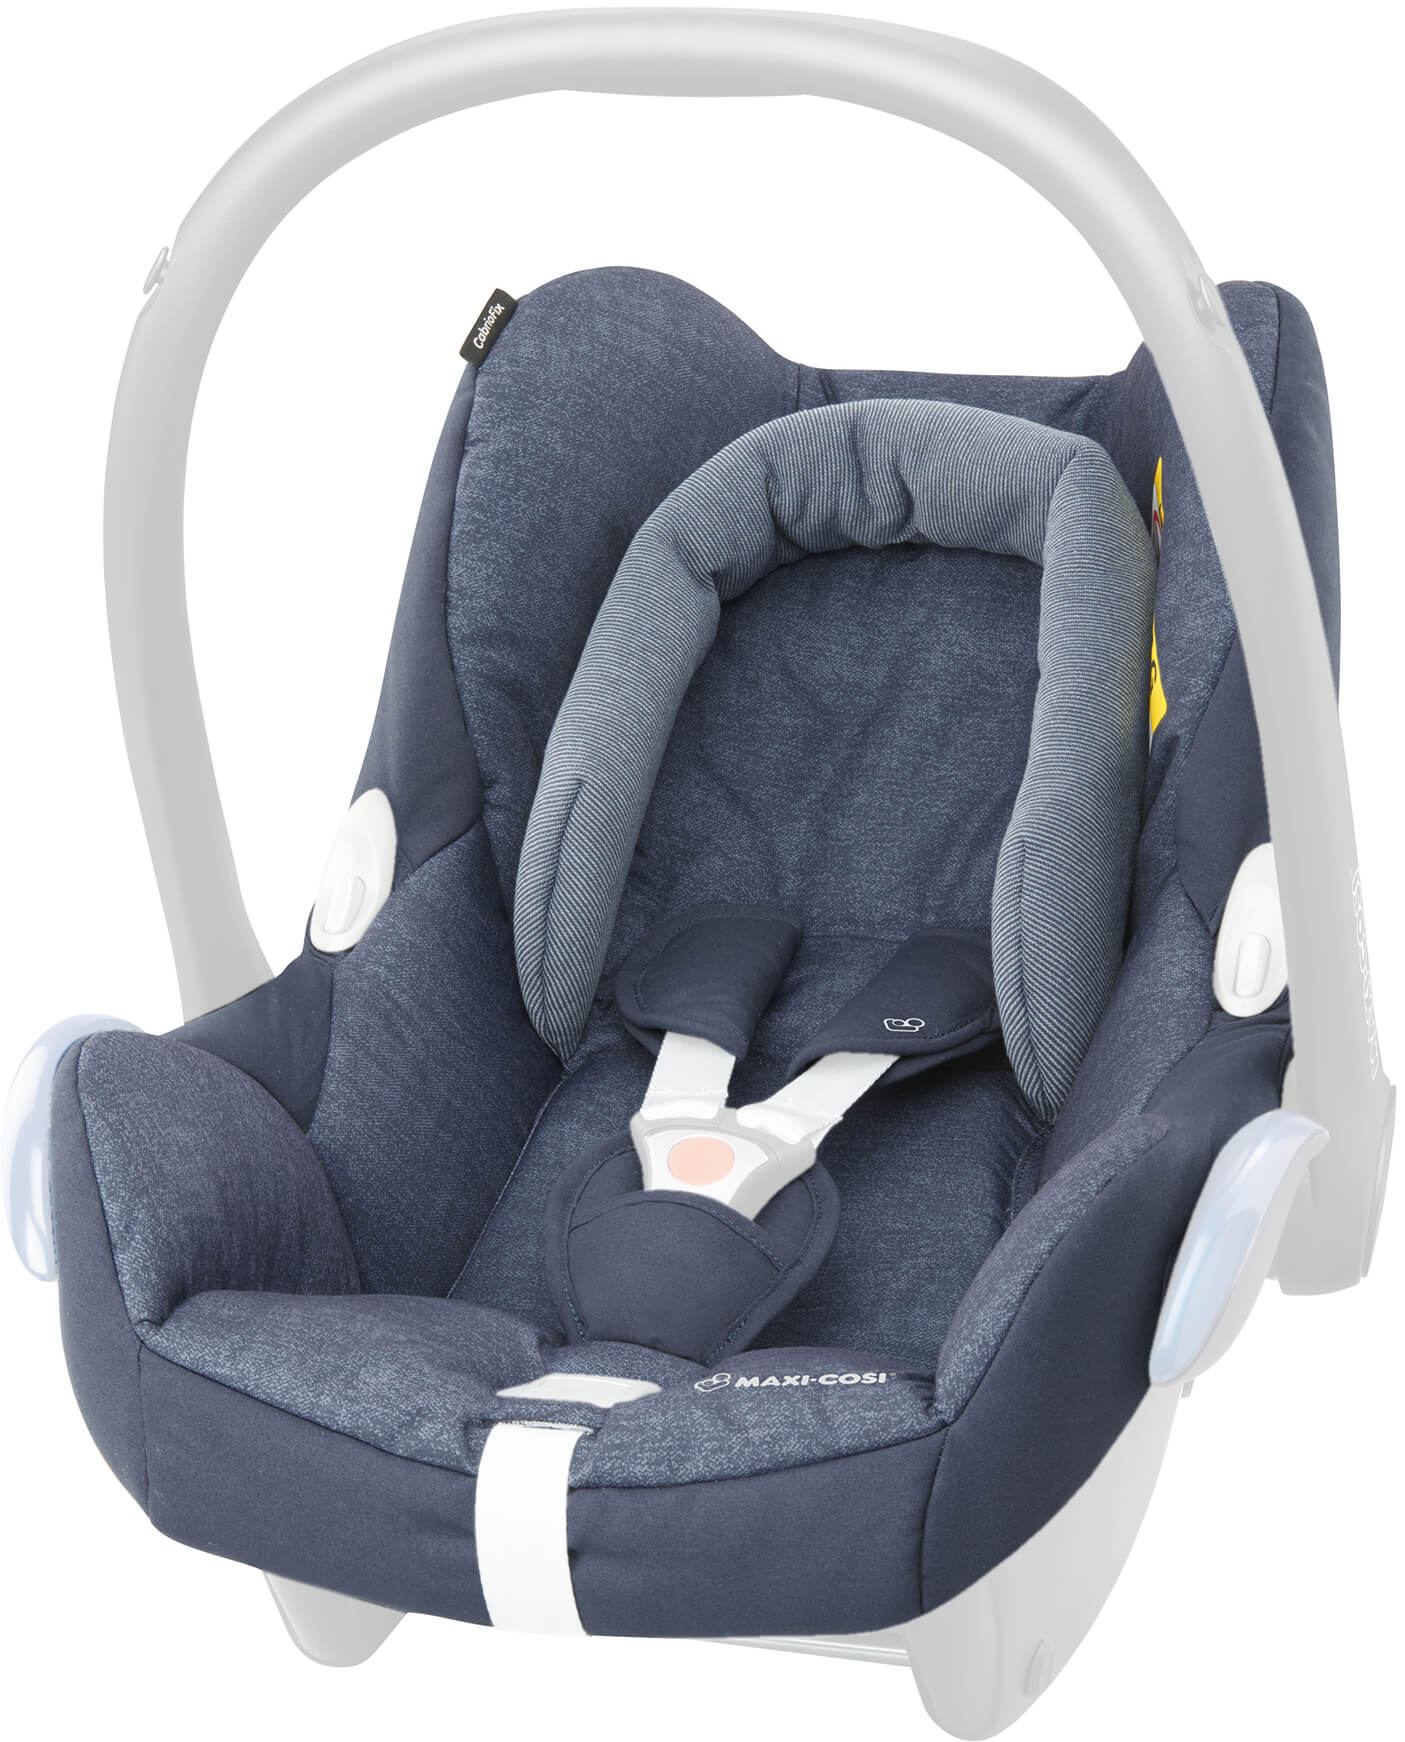 new cover for maxi cosi car seat velcromag. Black Bedroom Furniture Sets. Home Design Ideas